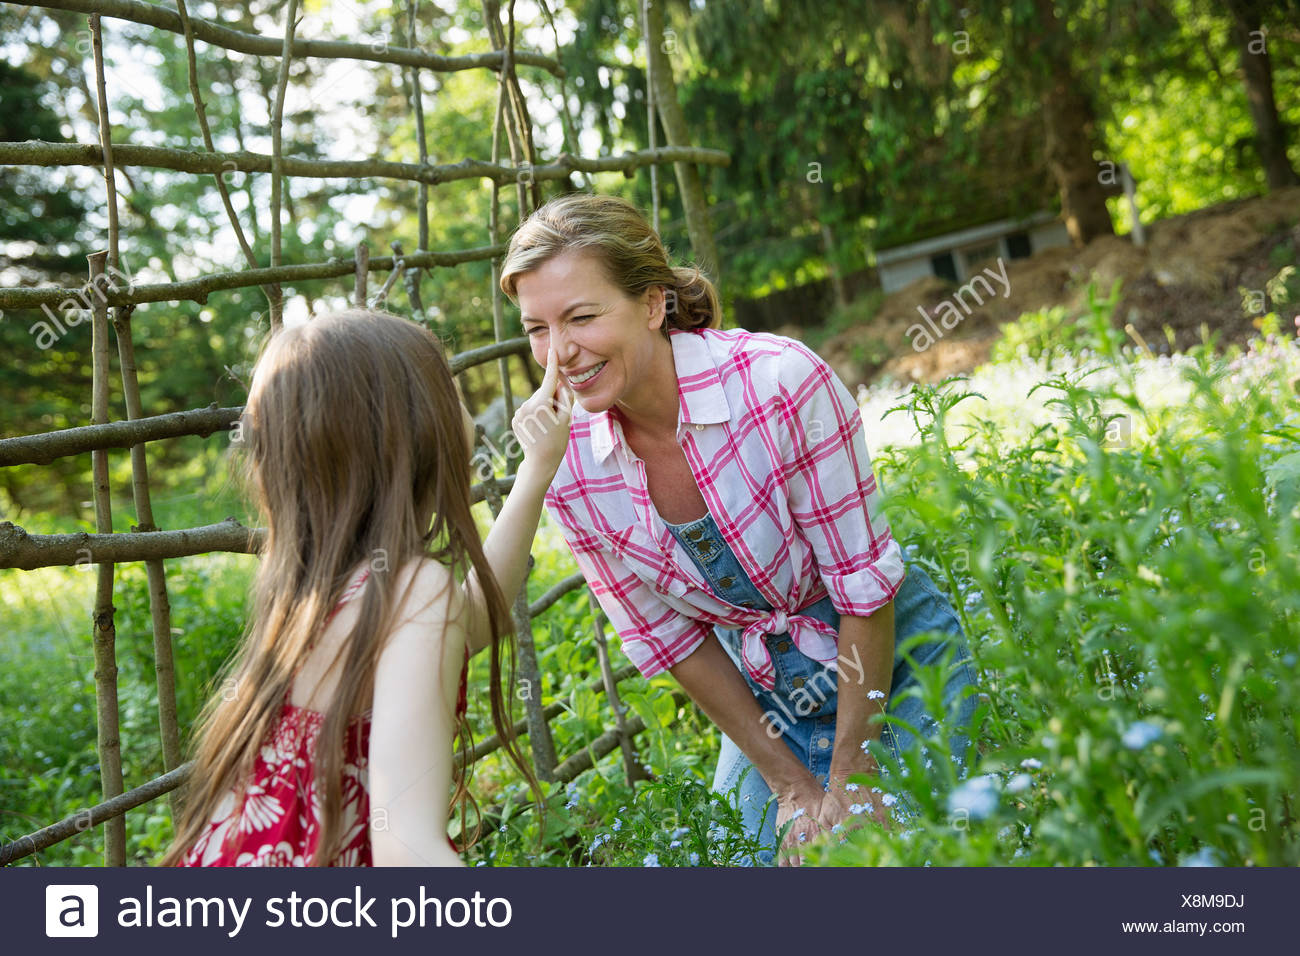 A mother and daughter together in a plant enclosure in a garden. Green leafy plants. A child touching the adult woman's nose. - Stock Image